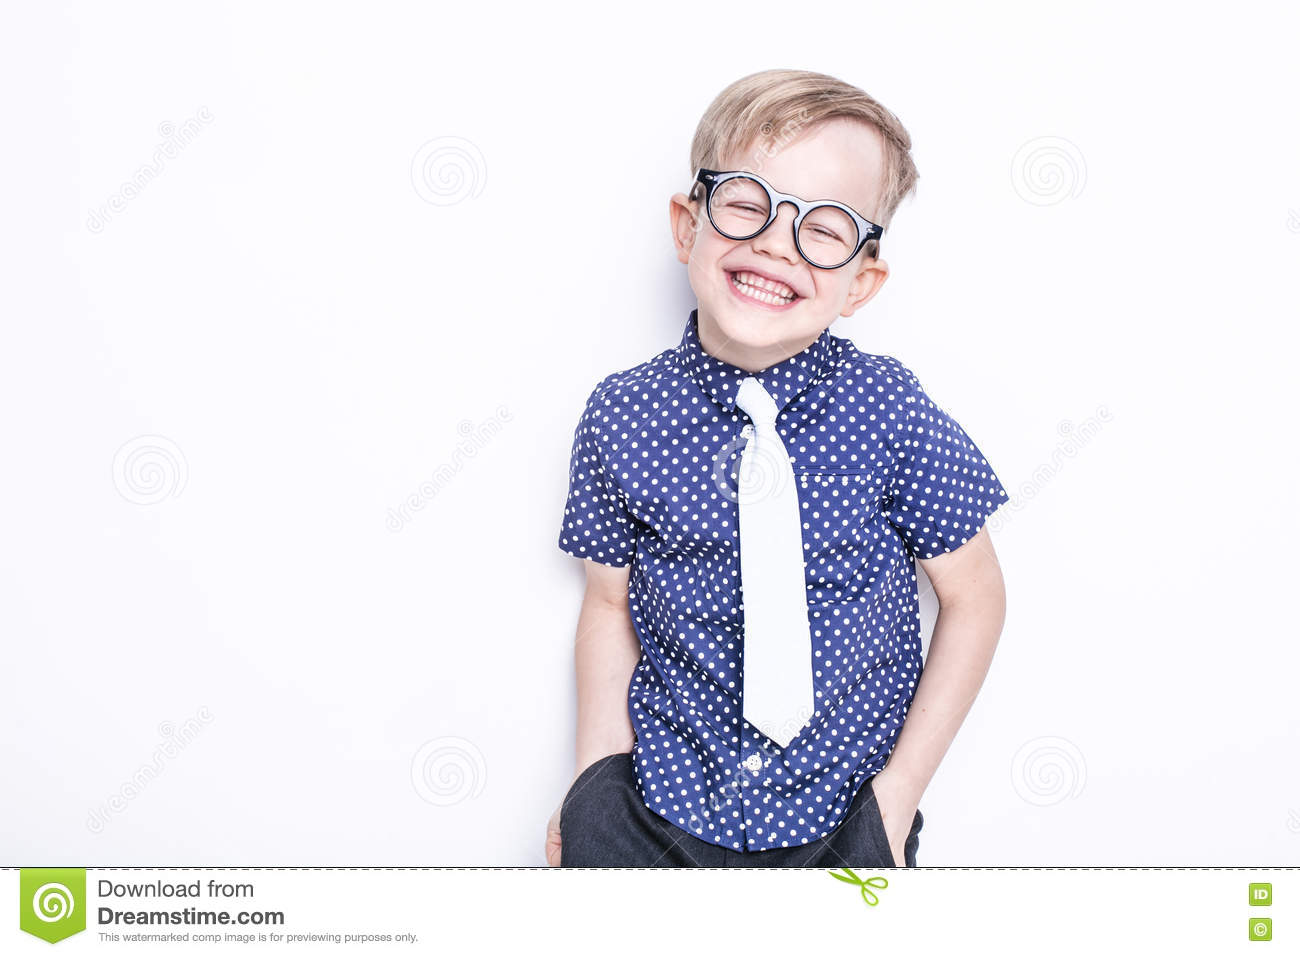 1c6c1d81f10 Portrait of a little boy in a funny glasses and tie. School. Preschool.  Fashion. Studio portrait isolated over white background